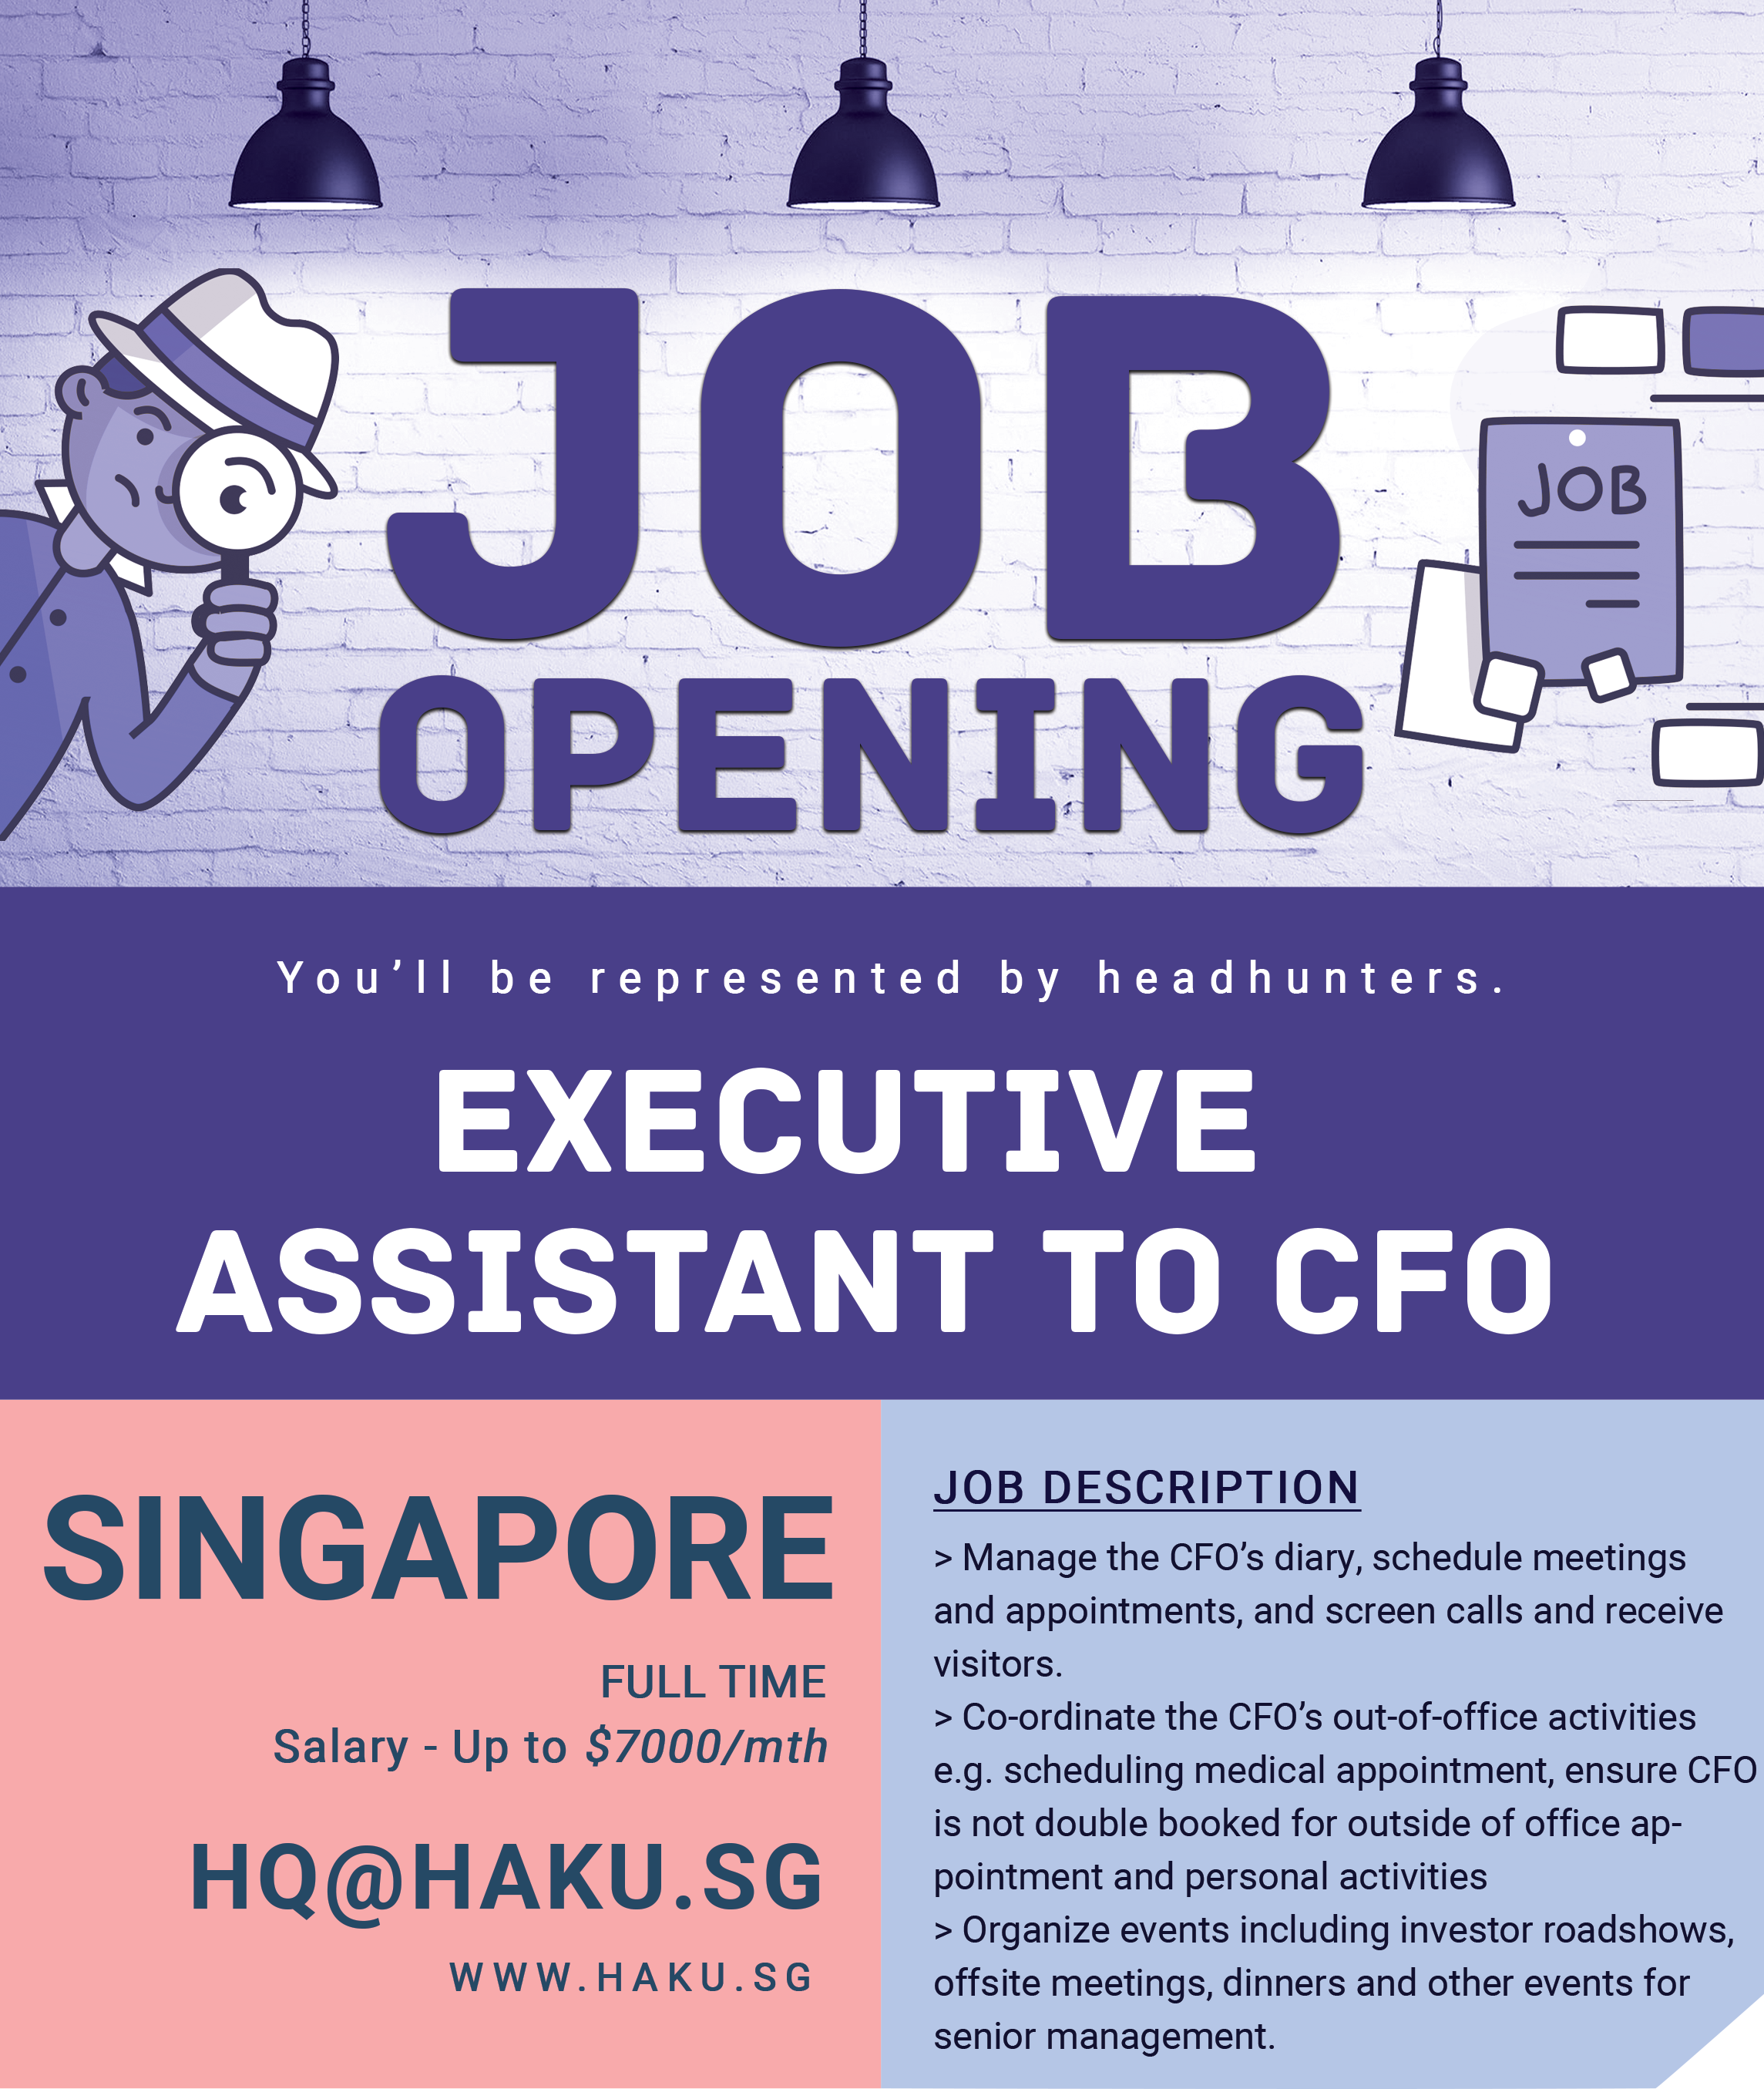 Job Opening In Singapore Job Tittle Executive Assistant To Cfo